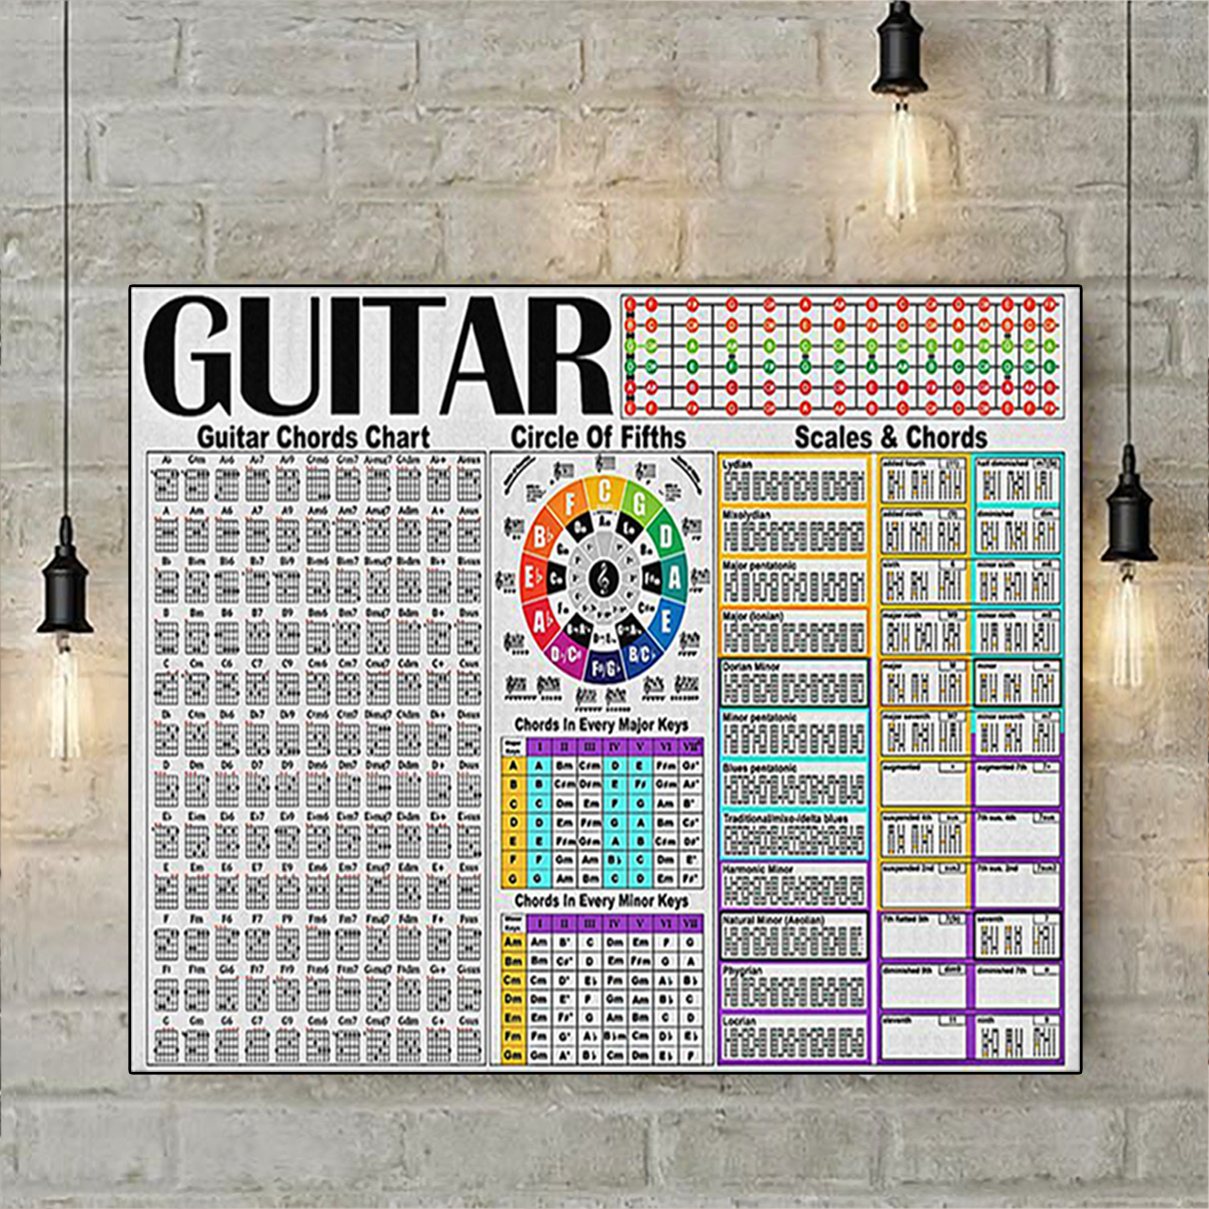 Guitar for us Guitar chords chart poster